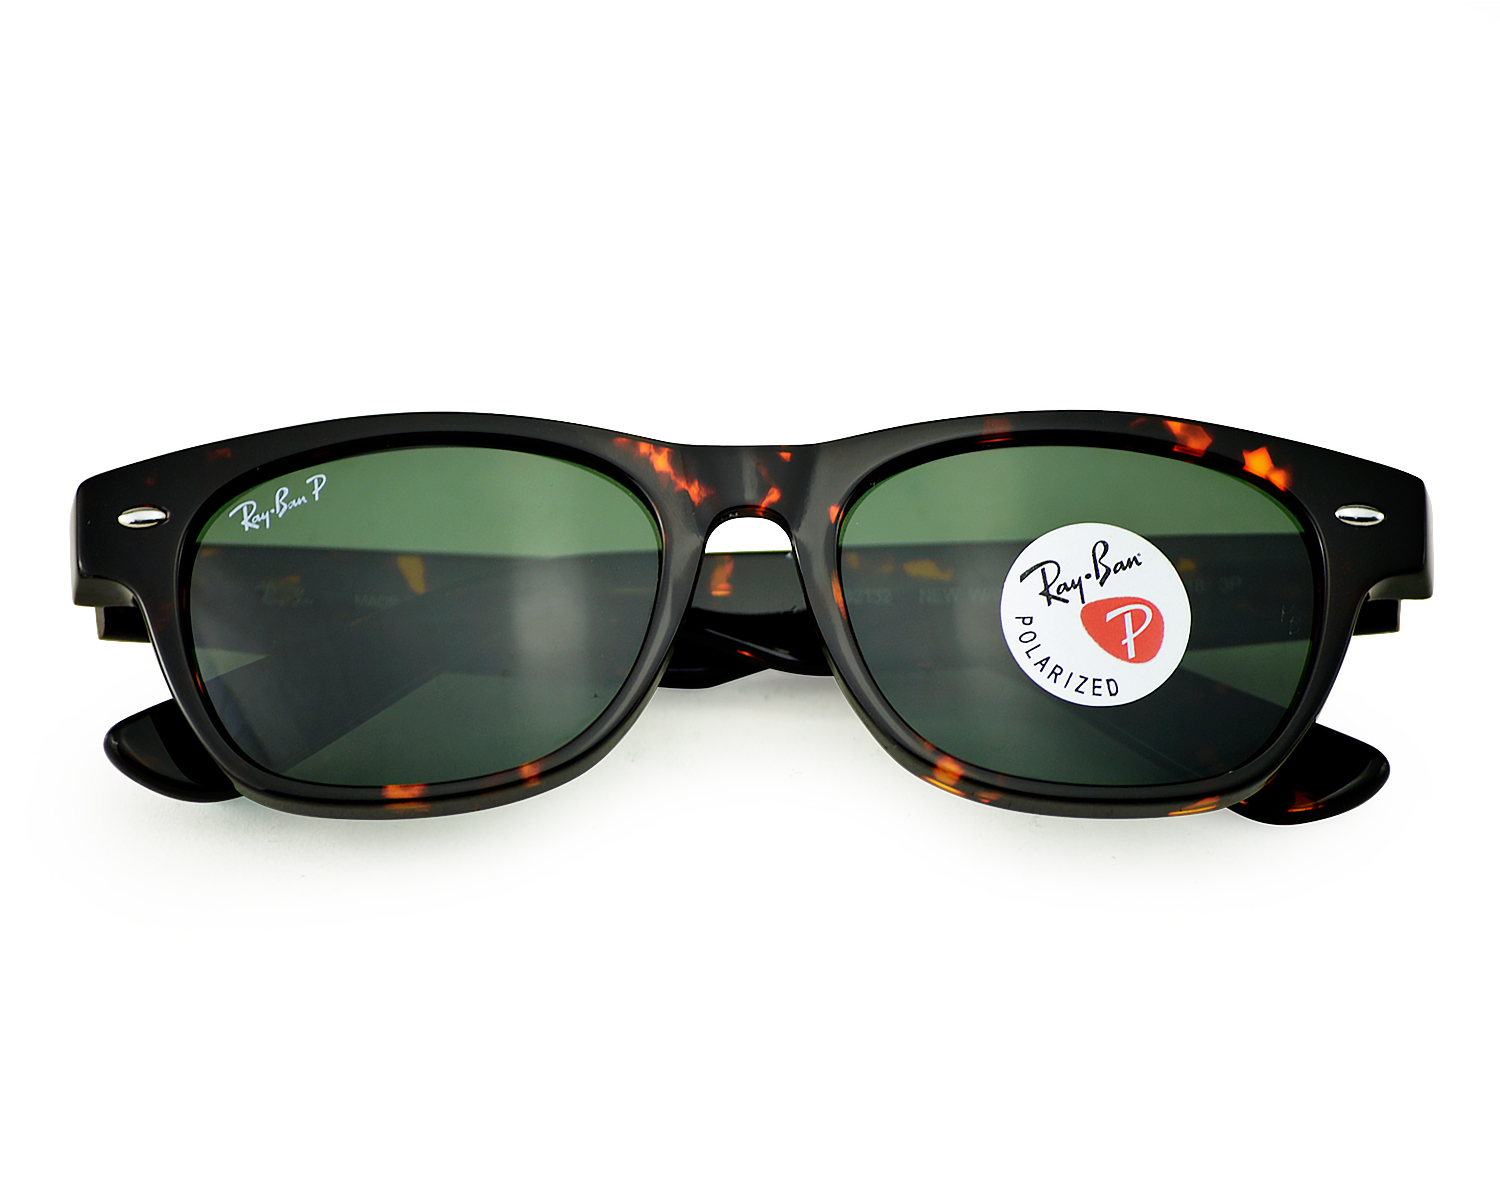 55314e83748 Ray-Ban RB2132 New Wayfarer 902 58 Tortoise Frame  Green Classic G-15  Lenses Polarized Unisex Sunglasses 52mm